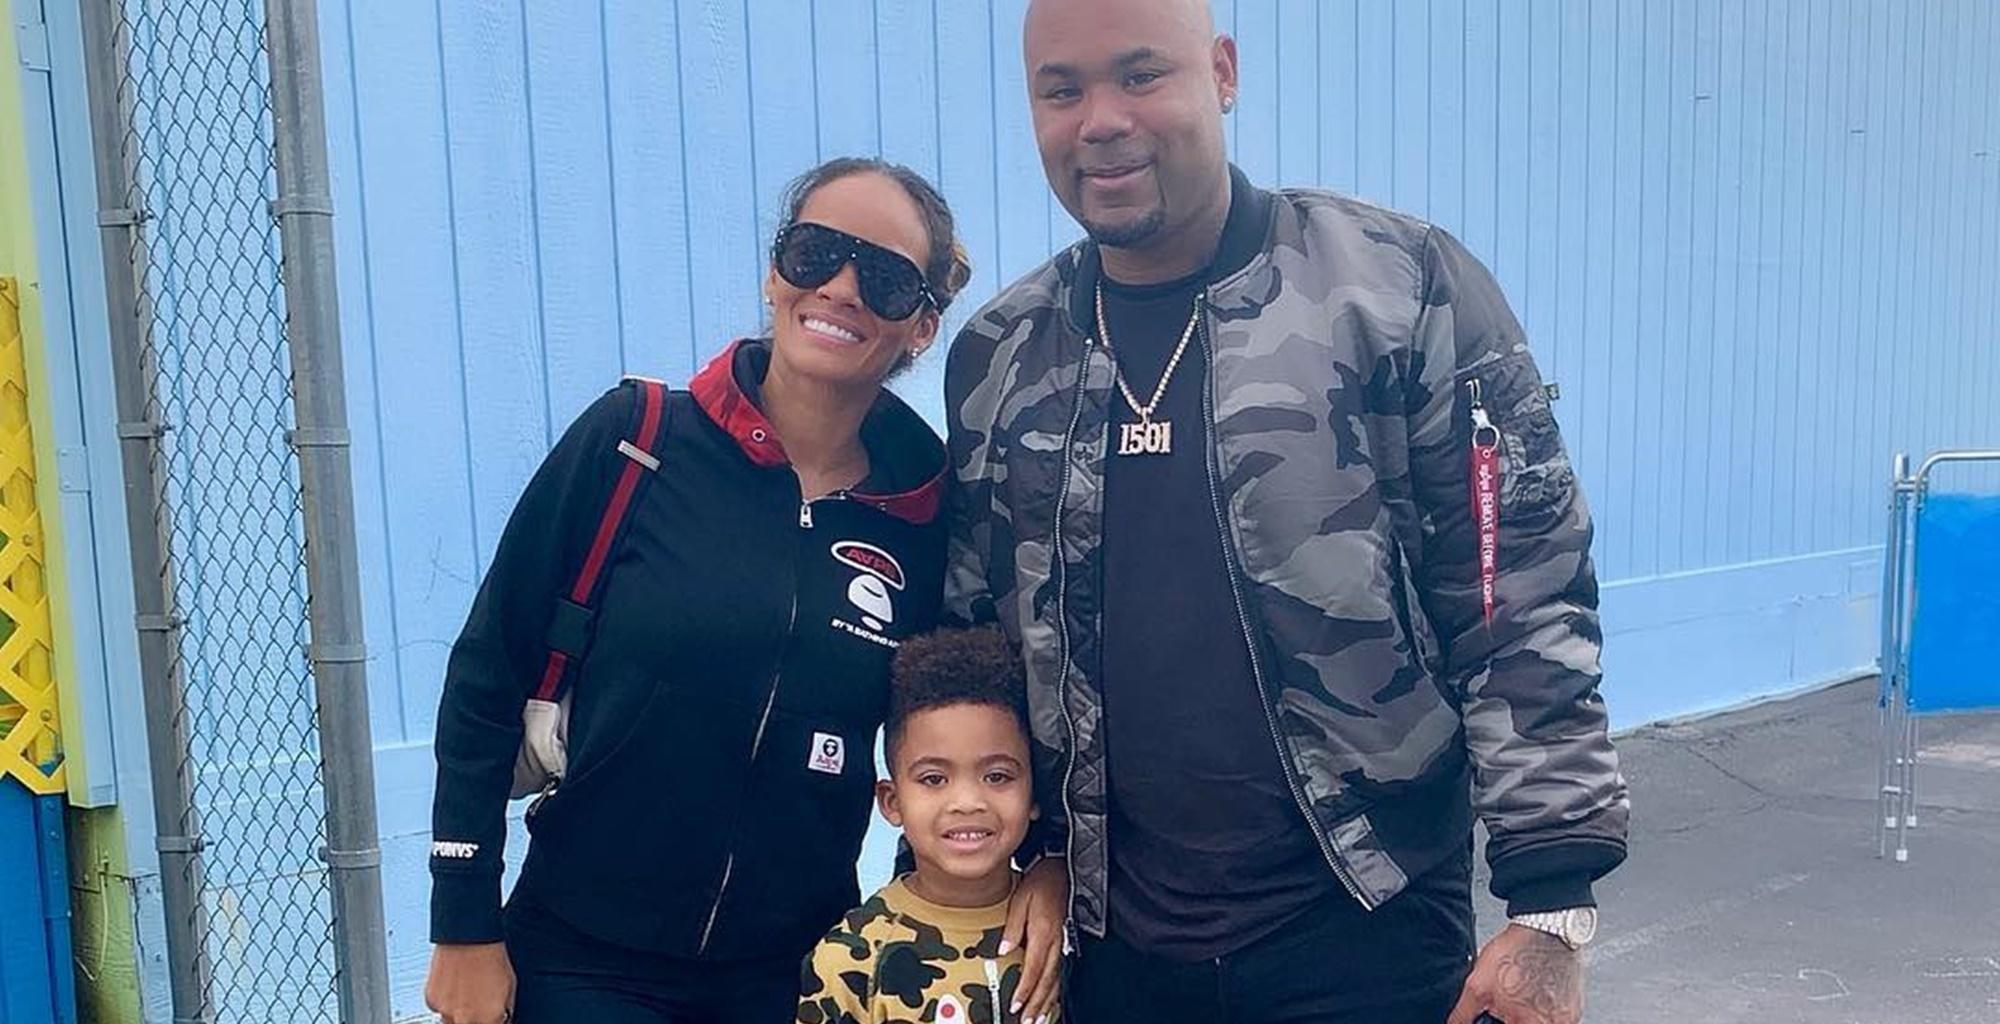 'Basketball Wives' Star Evelyn Lozada Unveils Video Of Son Leo Showing His Impressive Skills Like His Father, Carl Crawford